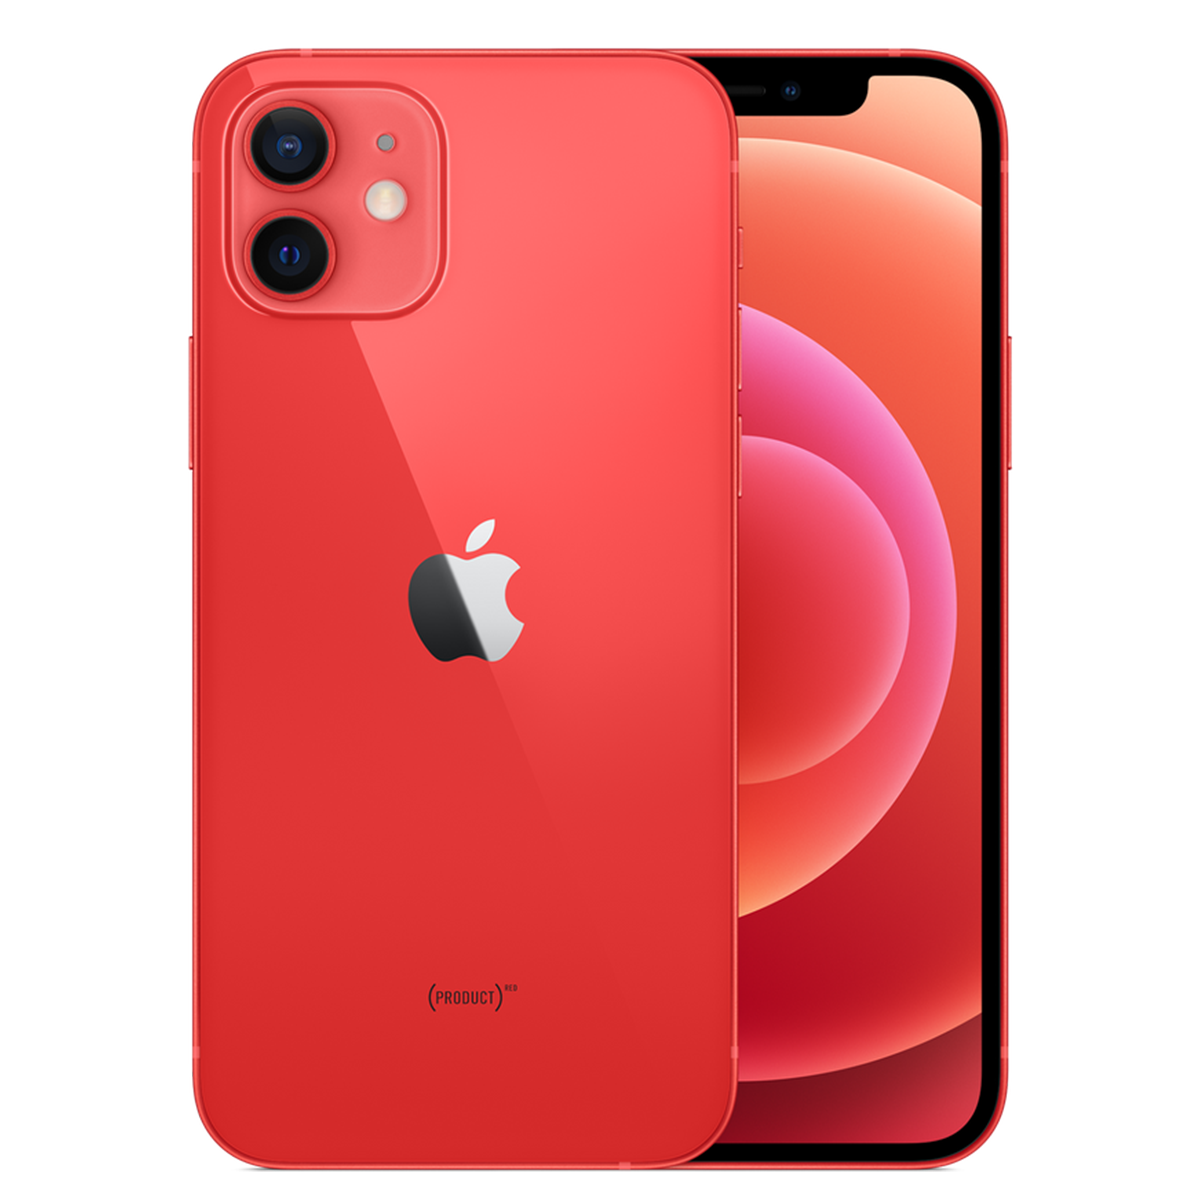 iPhone 12, (PRODUCT)Red, 64GB (Official Stock)